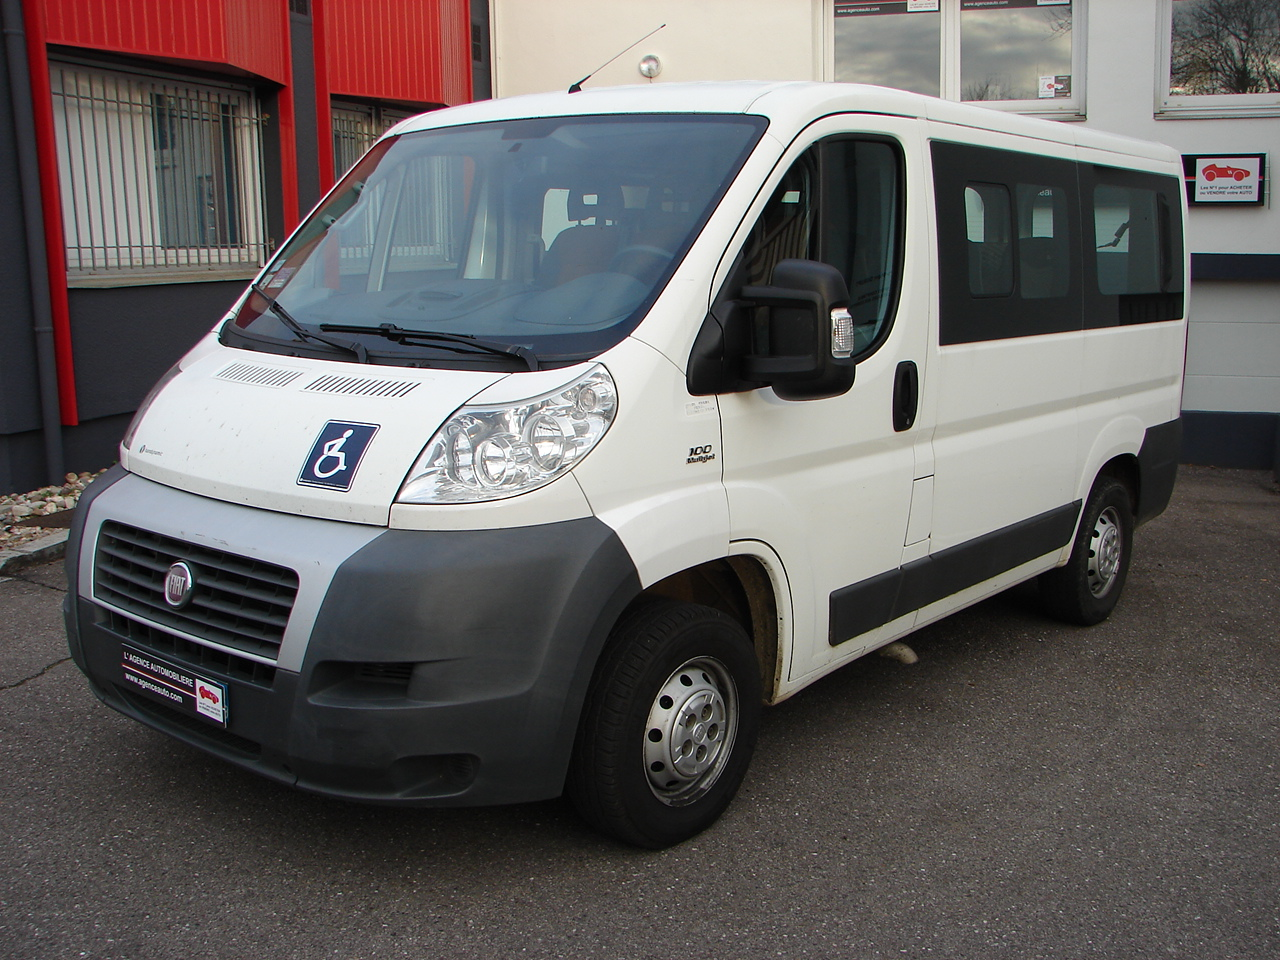 fiat ducato combi 2 2 mjt 100 tpmr handynamic 9 places occasion nancy pas cher voiture occasion. Black Bedroom Furniture Sets. Home Design Ideas